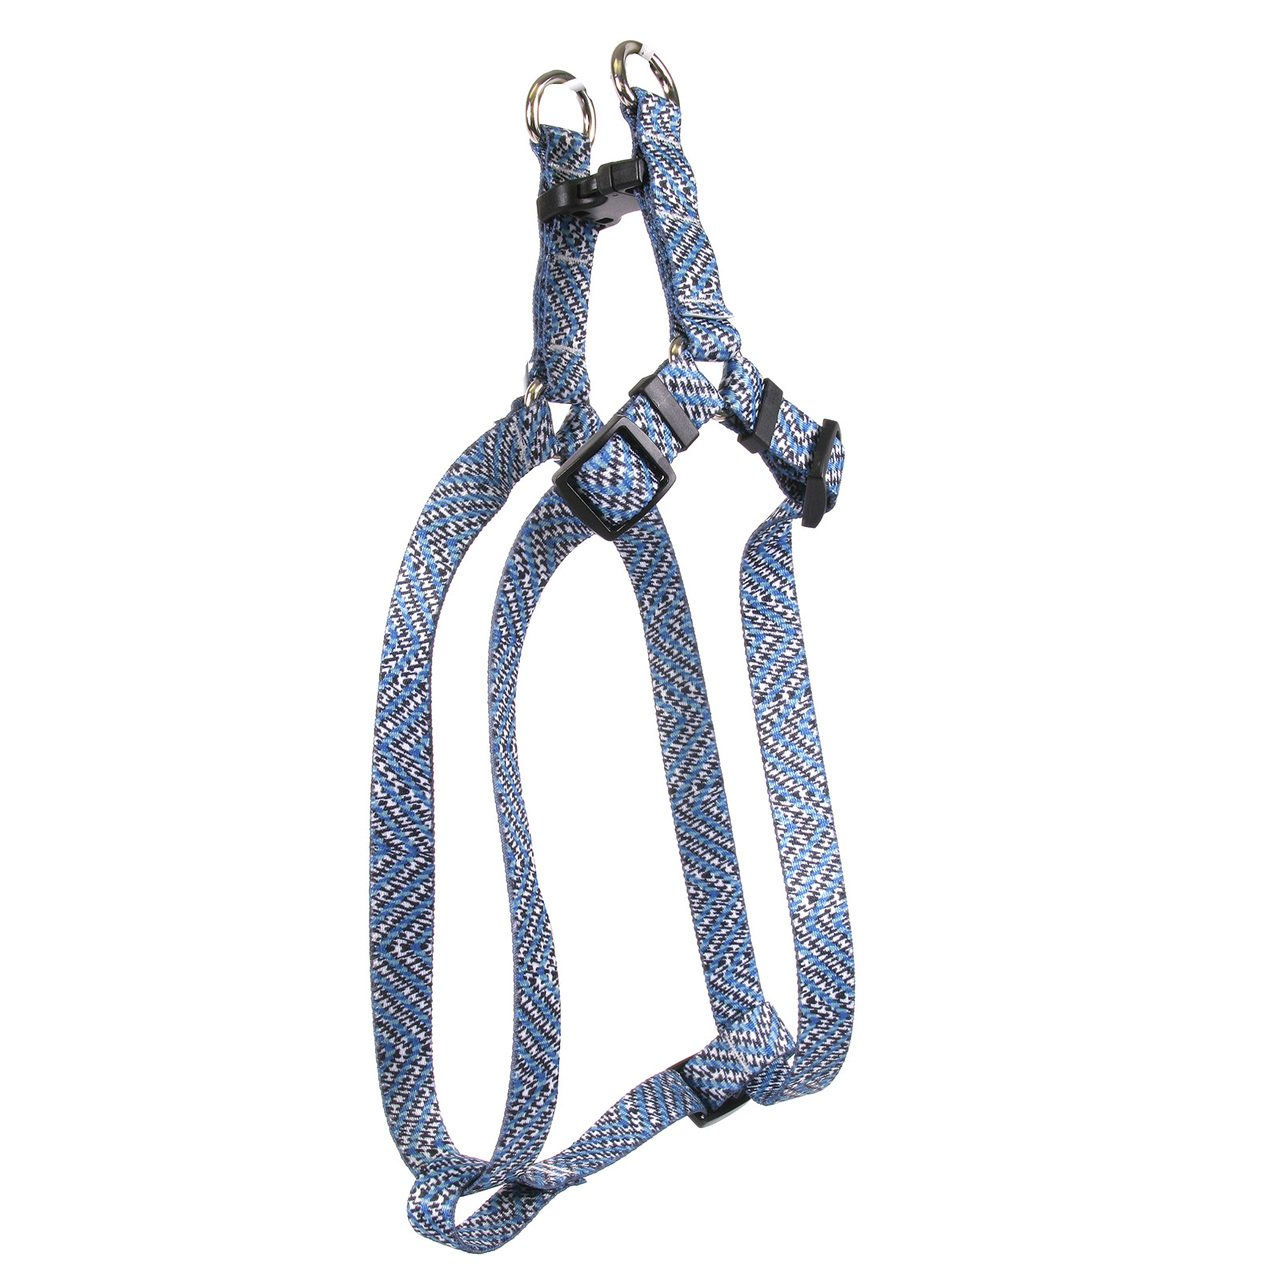 Large 25\ Yellow Dog Design bluee Tweed Step-in Dog Harness 1  Wide and Fits Chest Circumference of 25 to 40 , Large